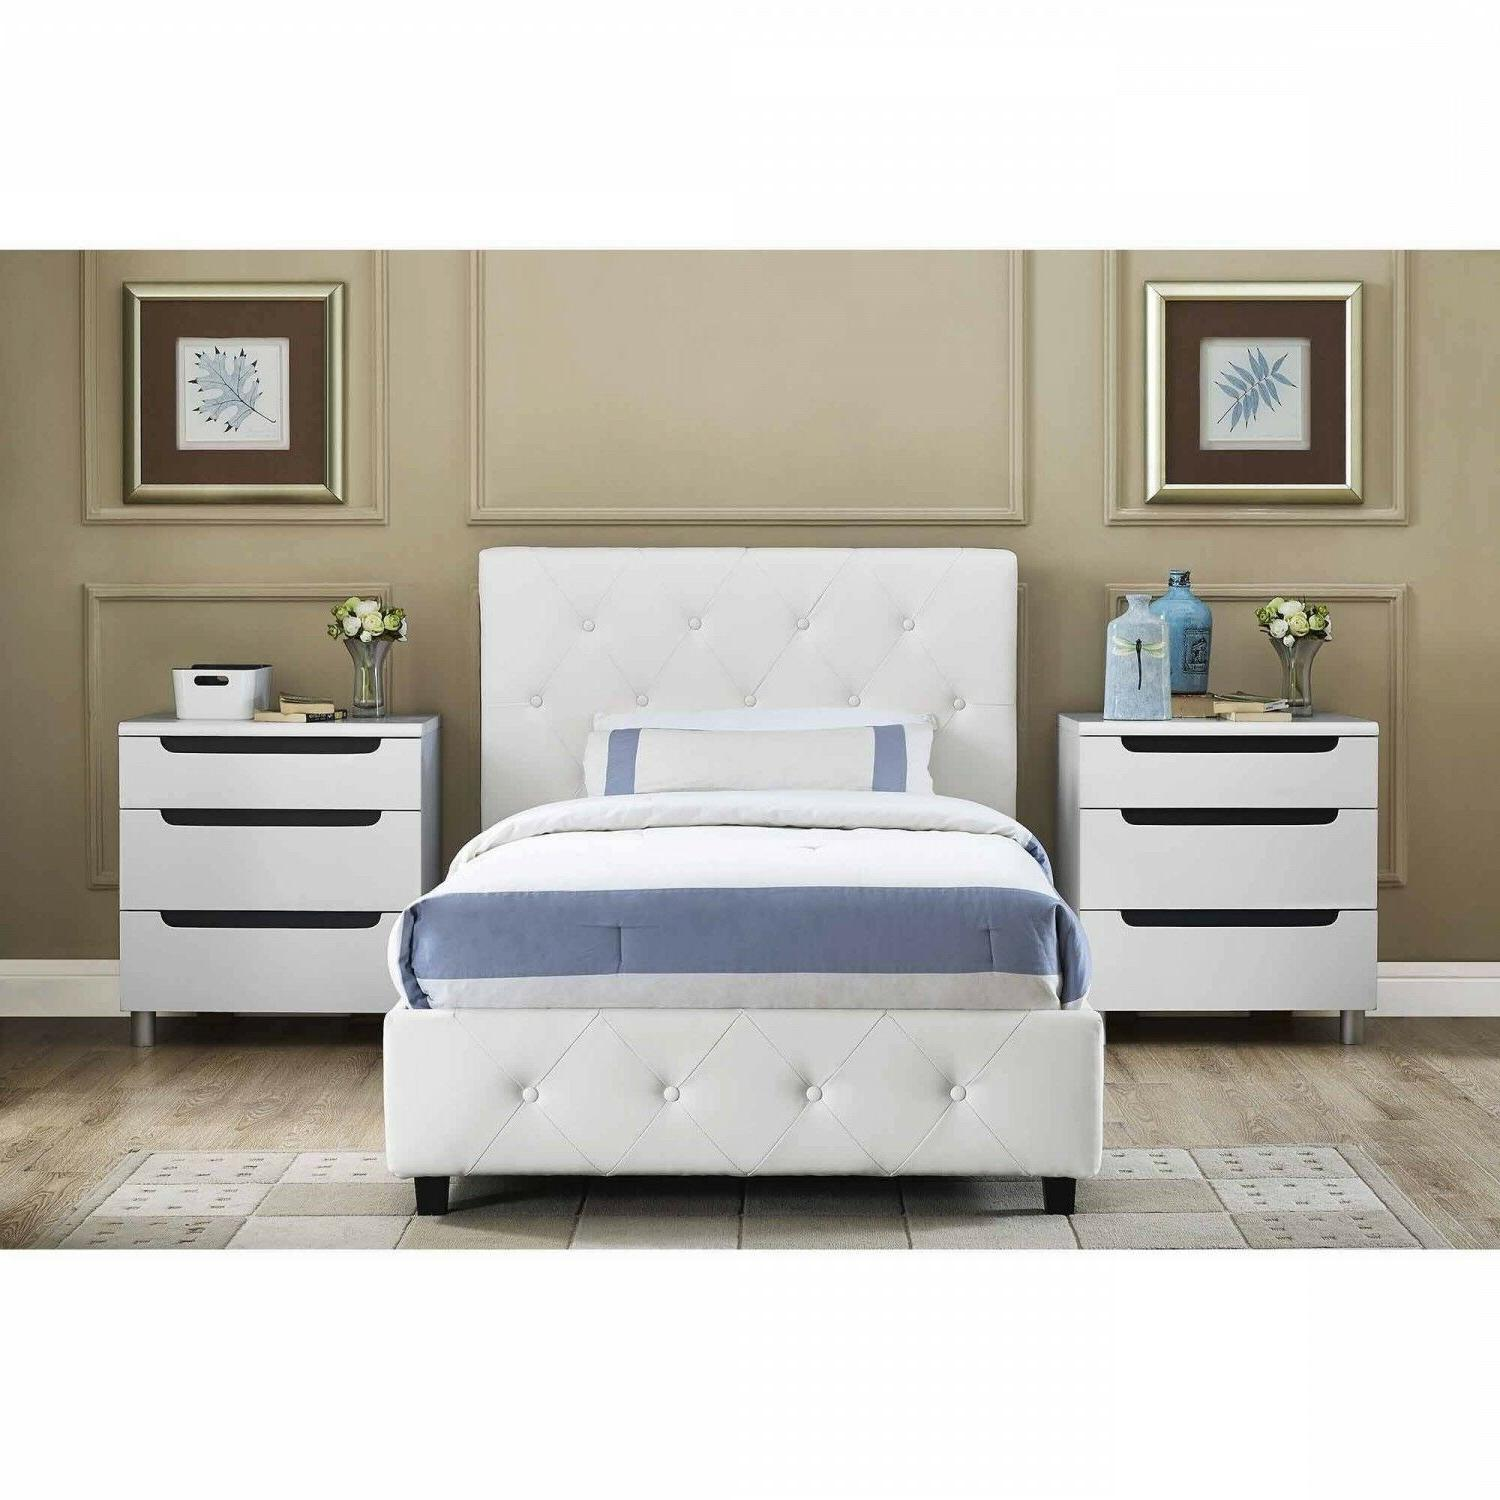 Headboard Bed Leather White Full Size